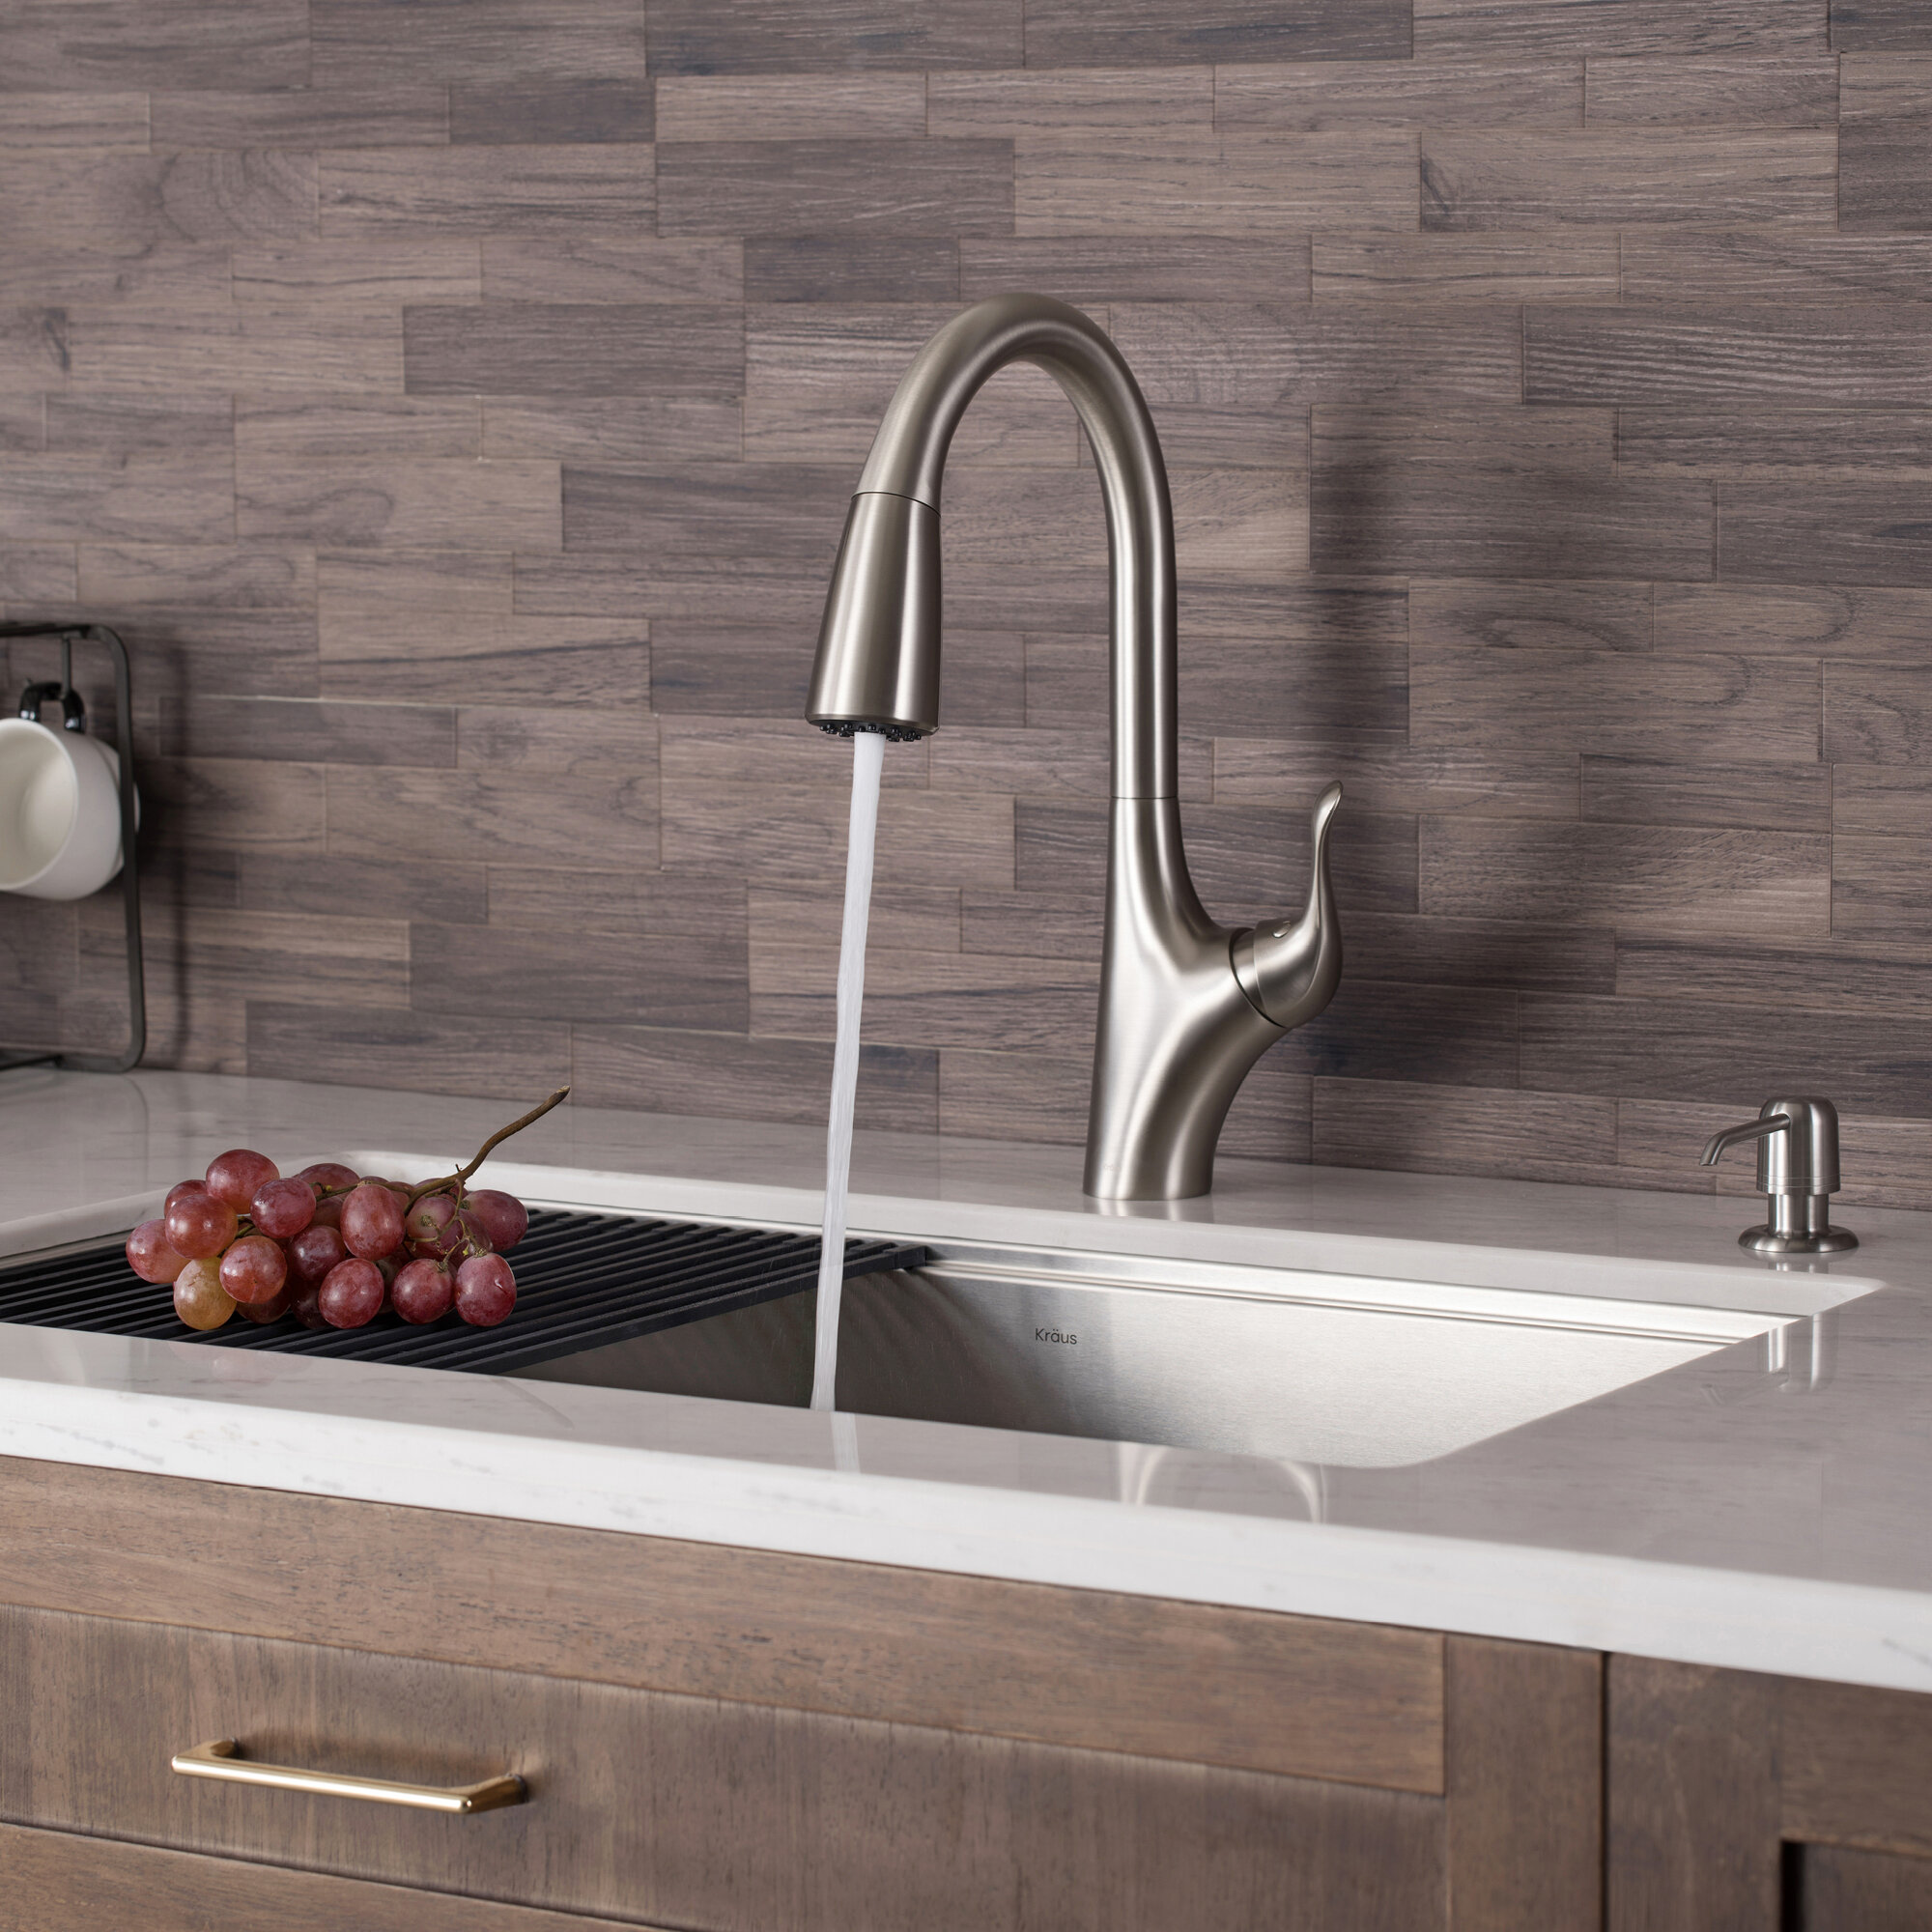 Kraus Merlin Stainless Steel Pull Down Touch Single Handle Kitchen Faucet Reviews Wayfair